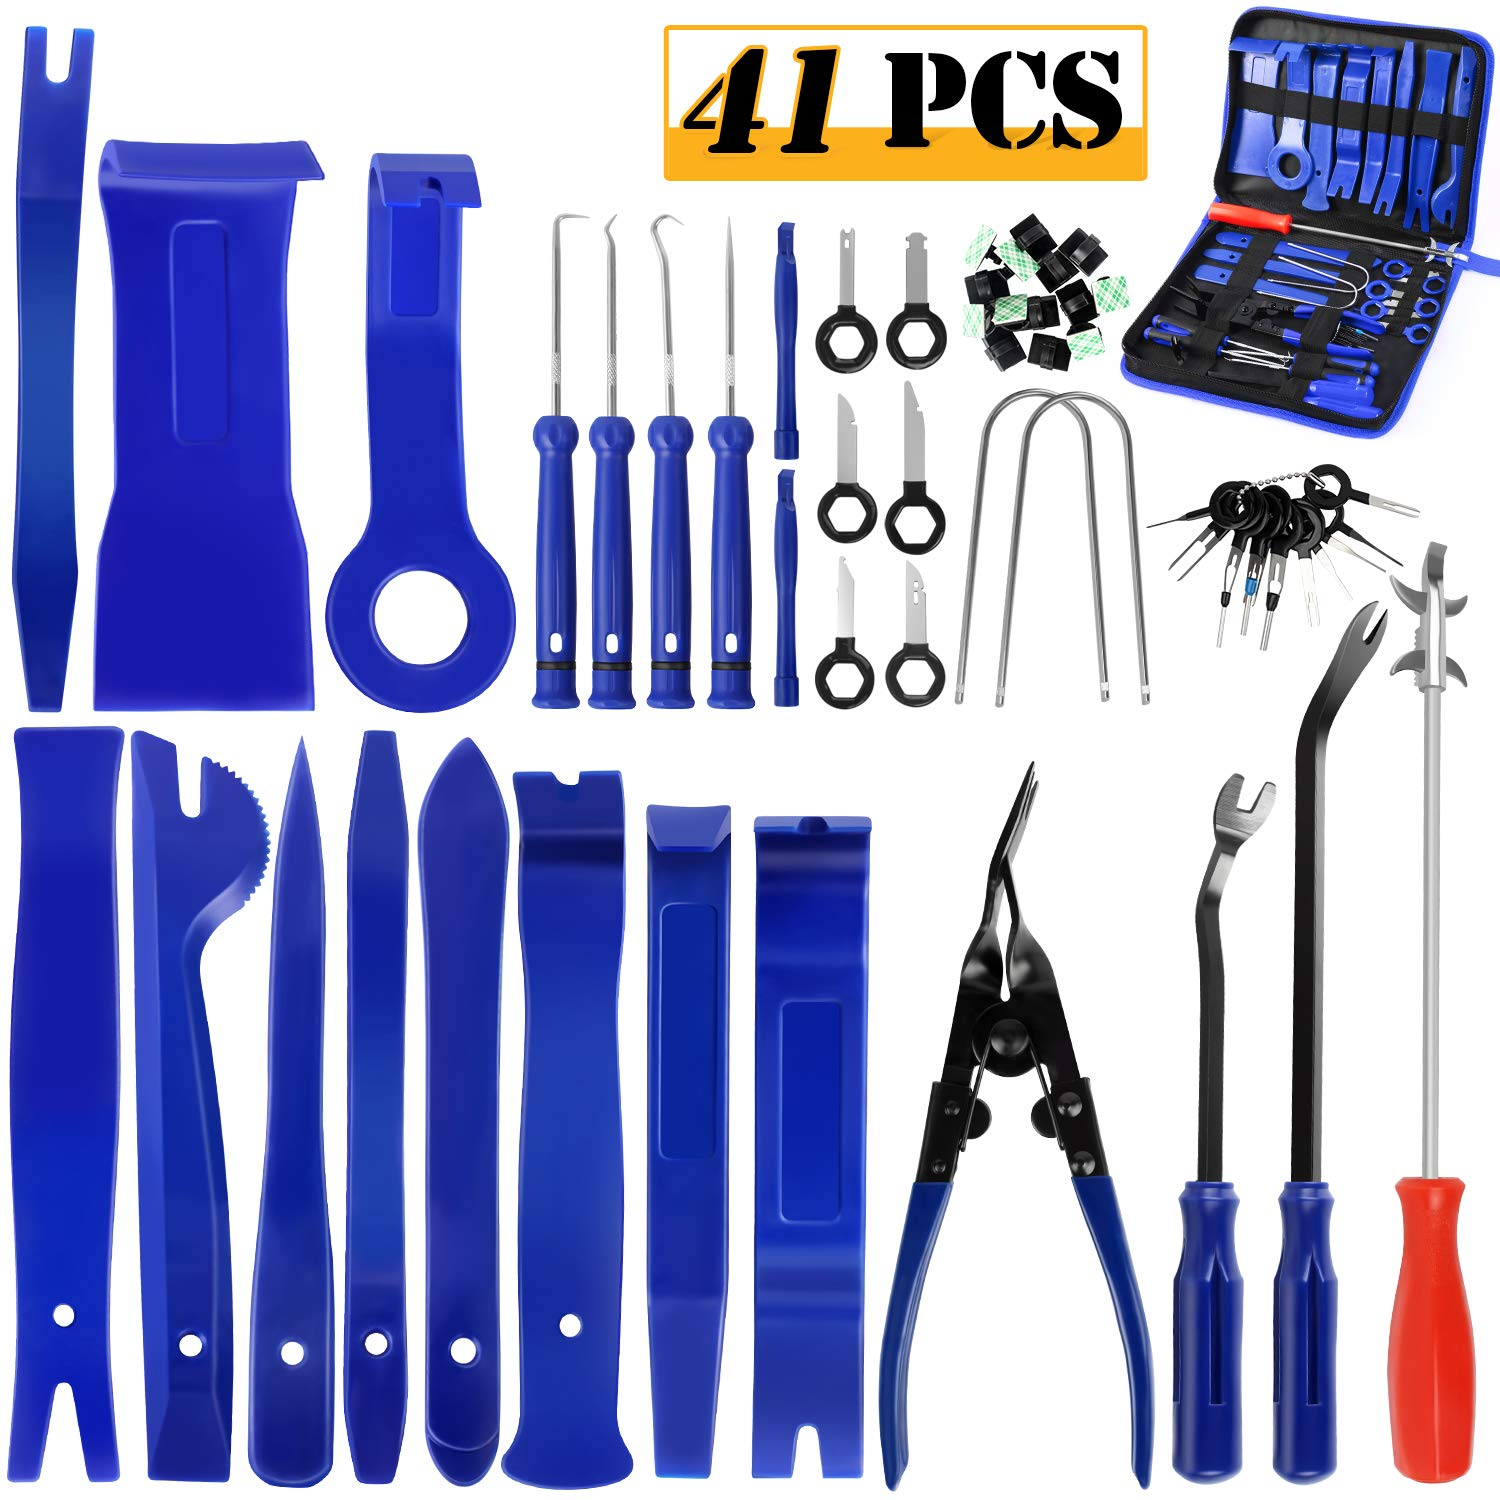 Precision Pick Car Pry Panel Repair Tool Cable Clips with Storage Bag OUTON 41PCS Trim Removal Tool Radio Removal Kit Upholstery Fastener Remover Auto Clip Pliers Tire Cleaning Hook